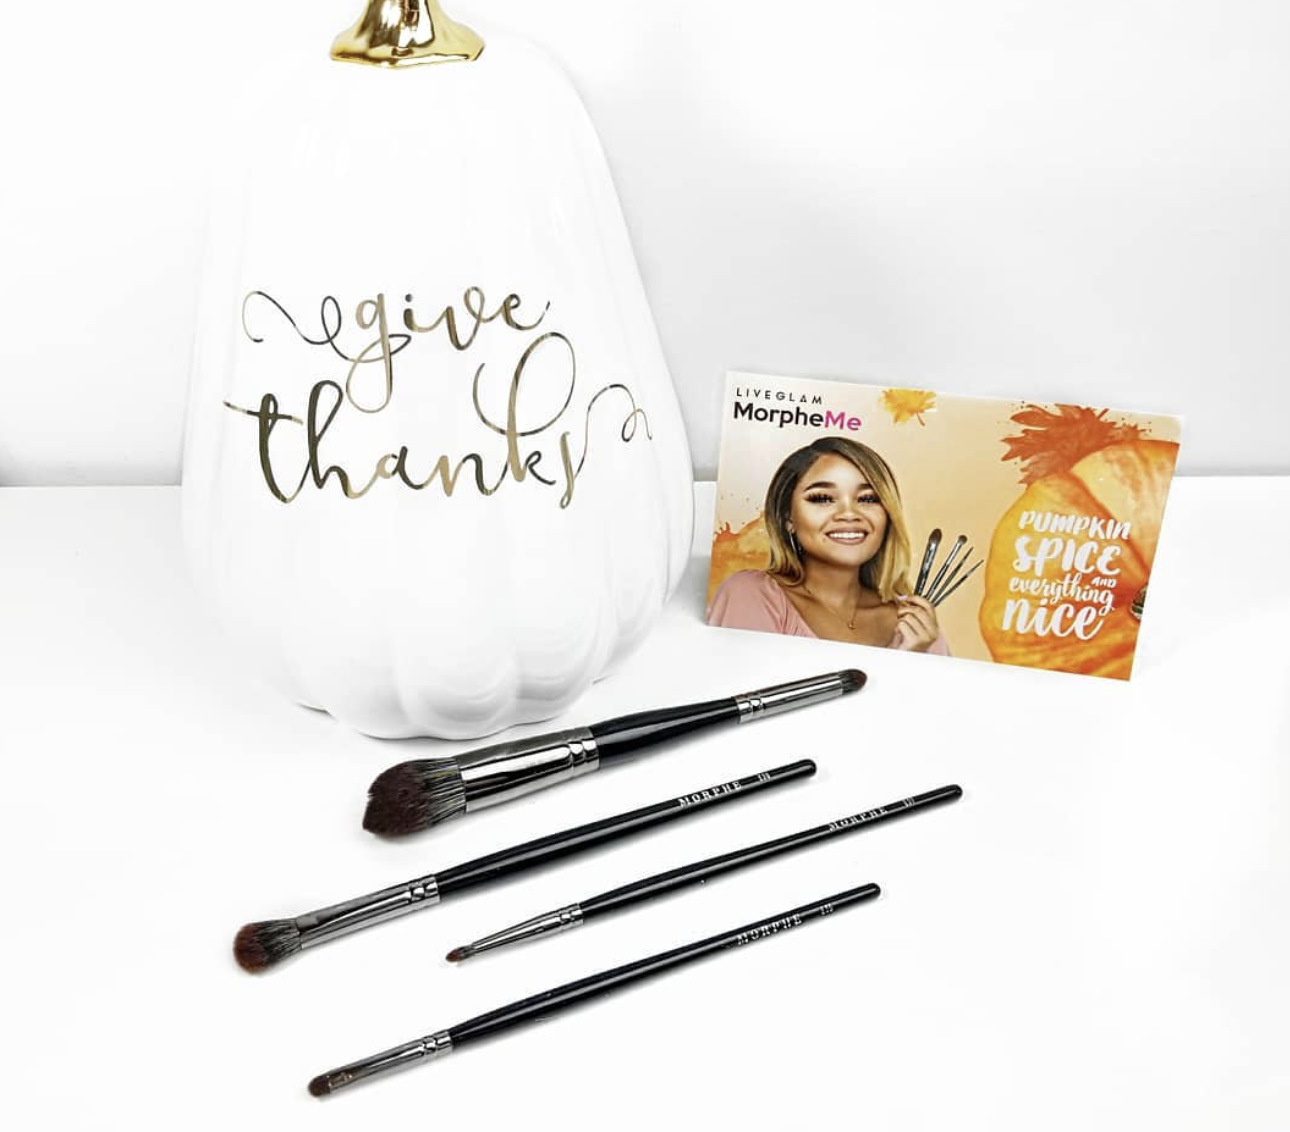 Morphe Me October 2018 Brush Subscription